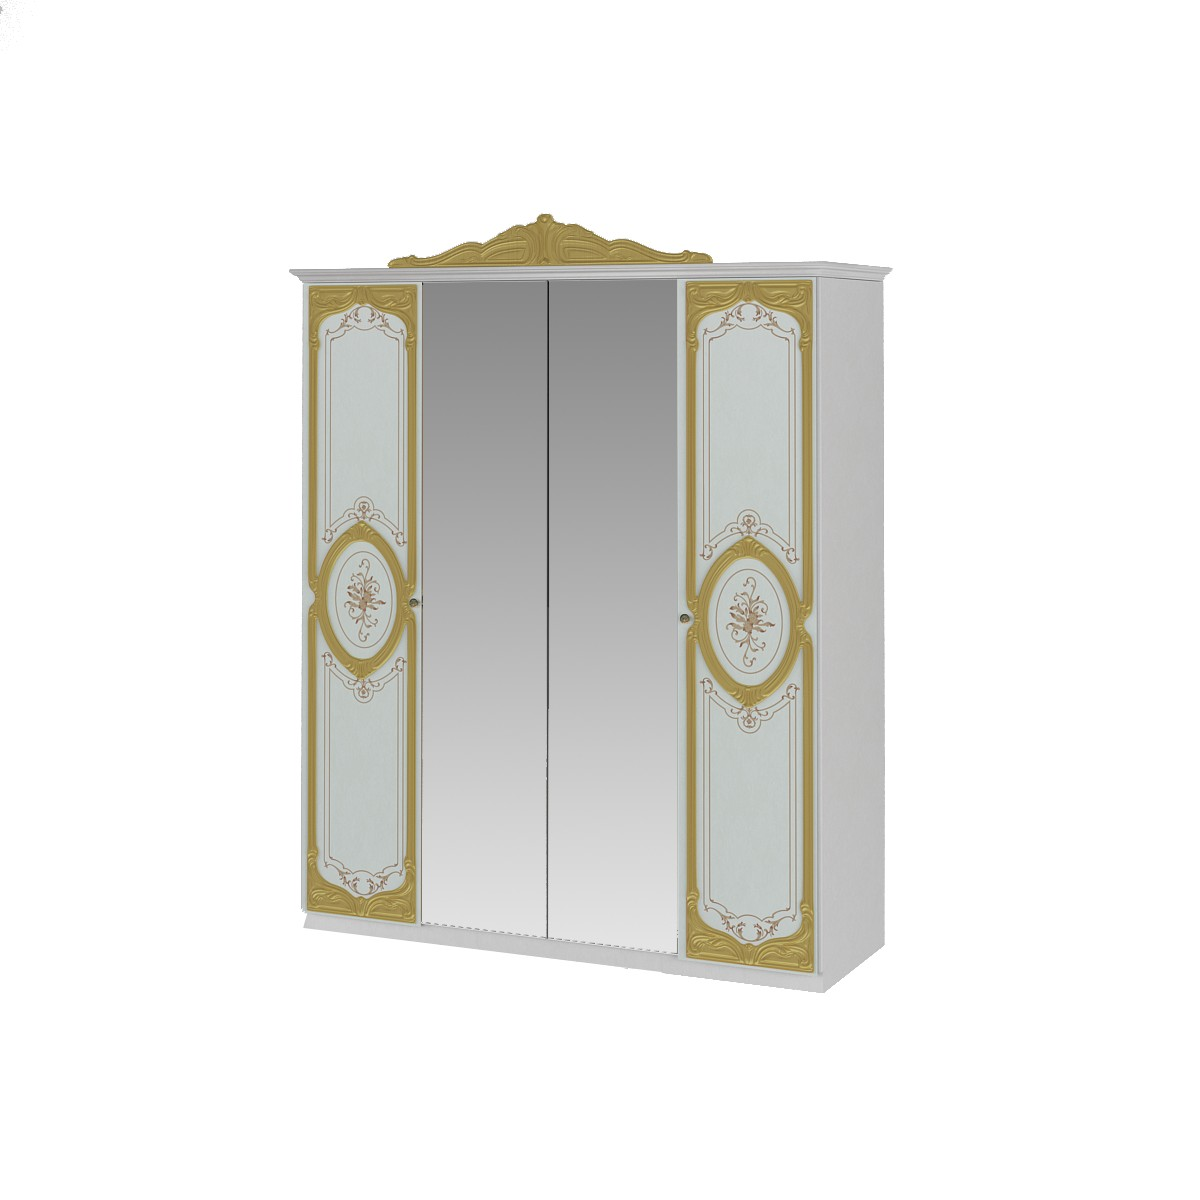 Barock Schlafzimmer Remo in Weiss/Gold 6-Teilig